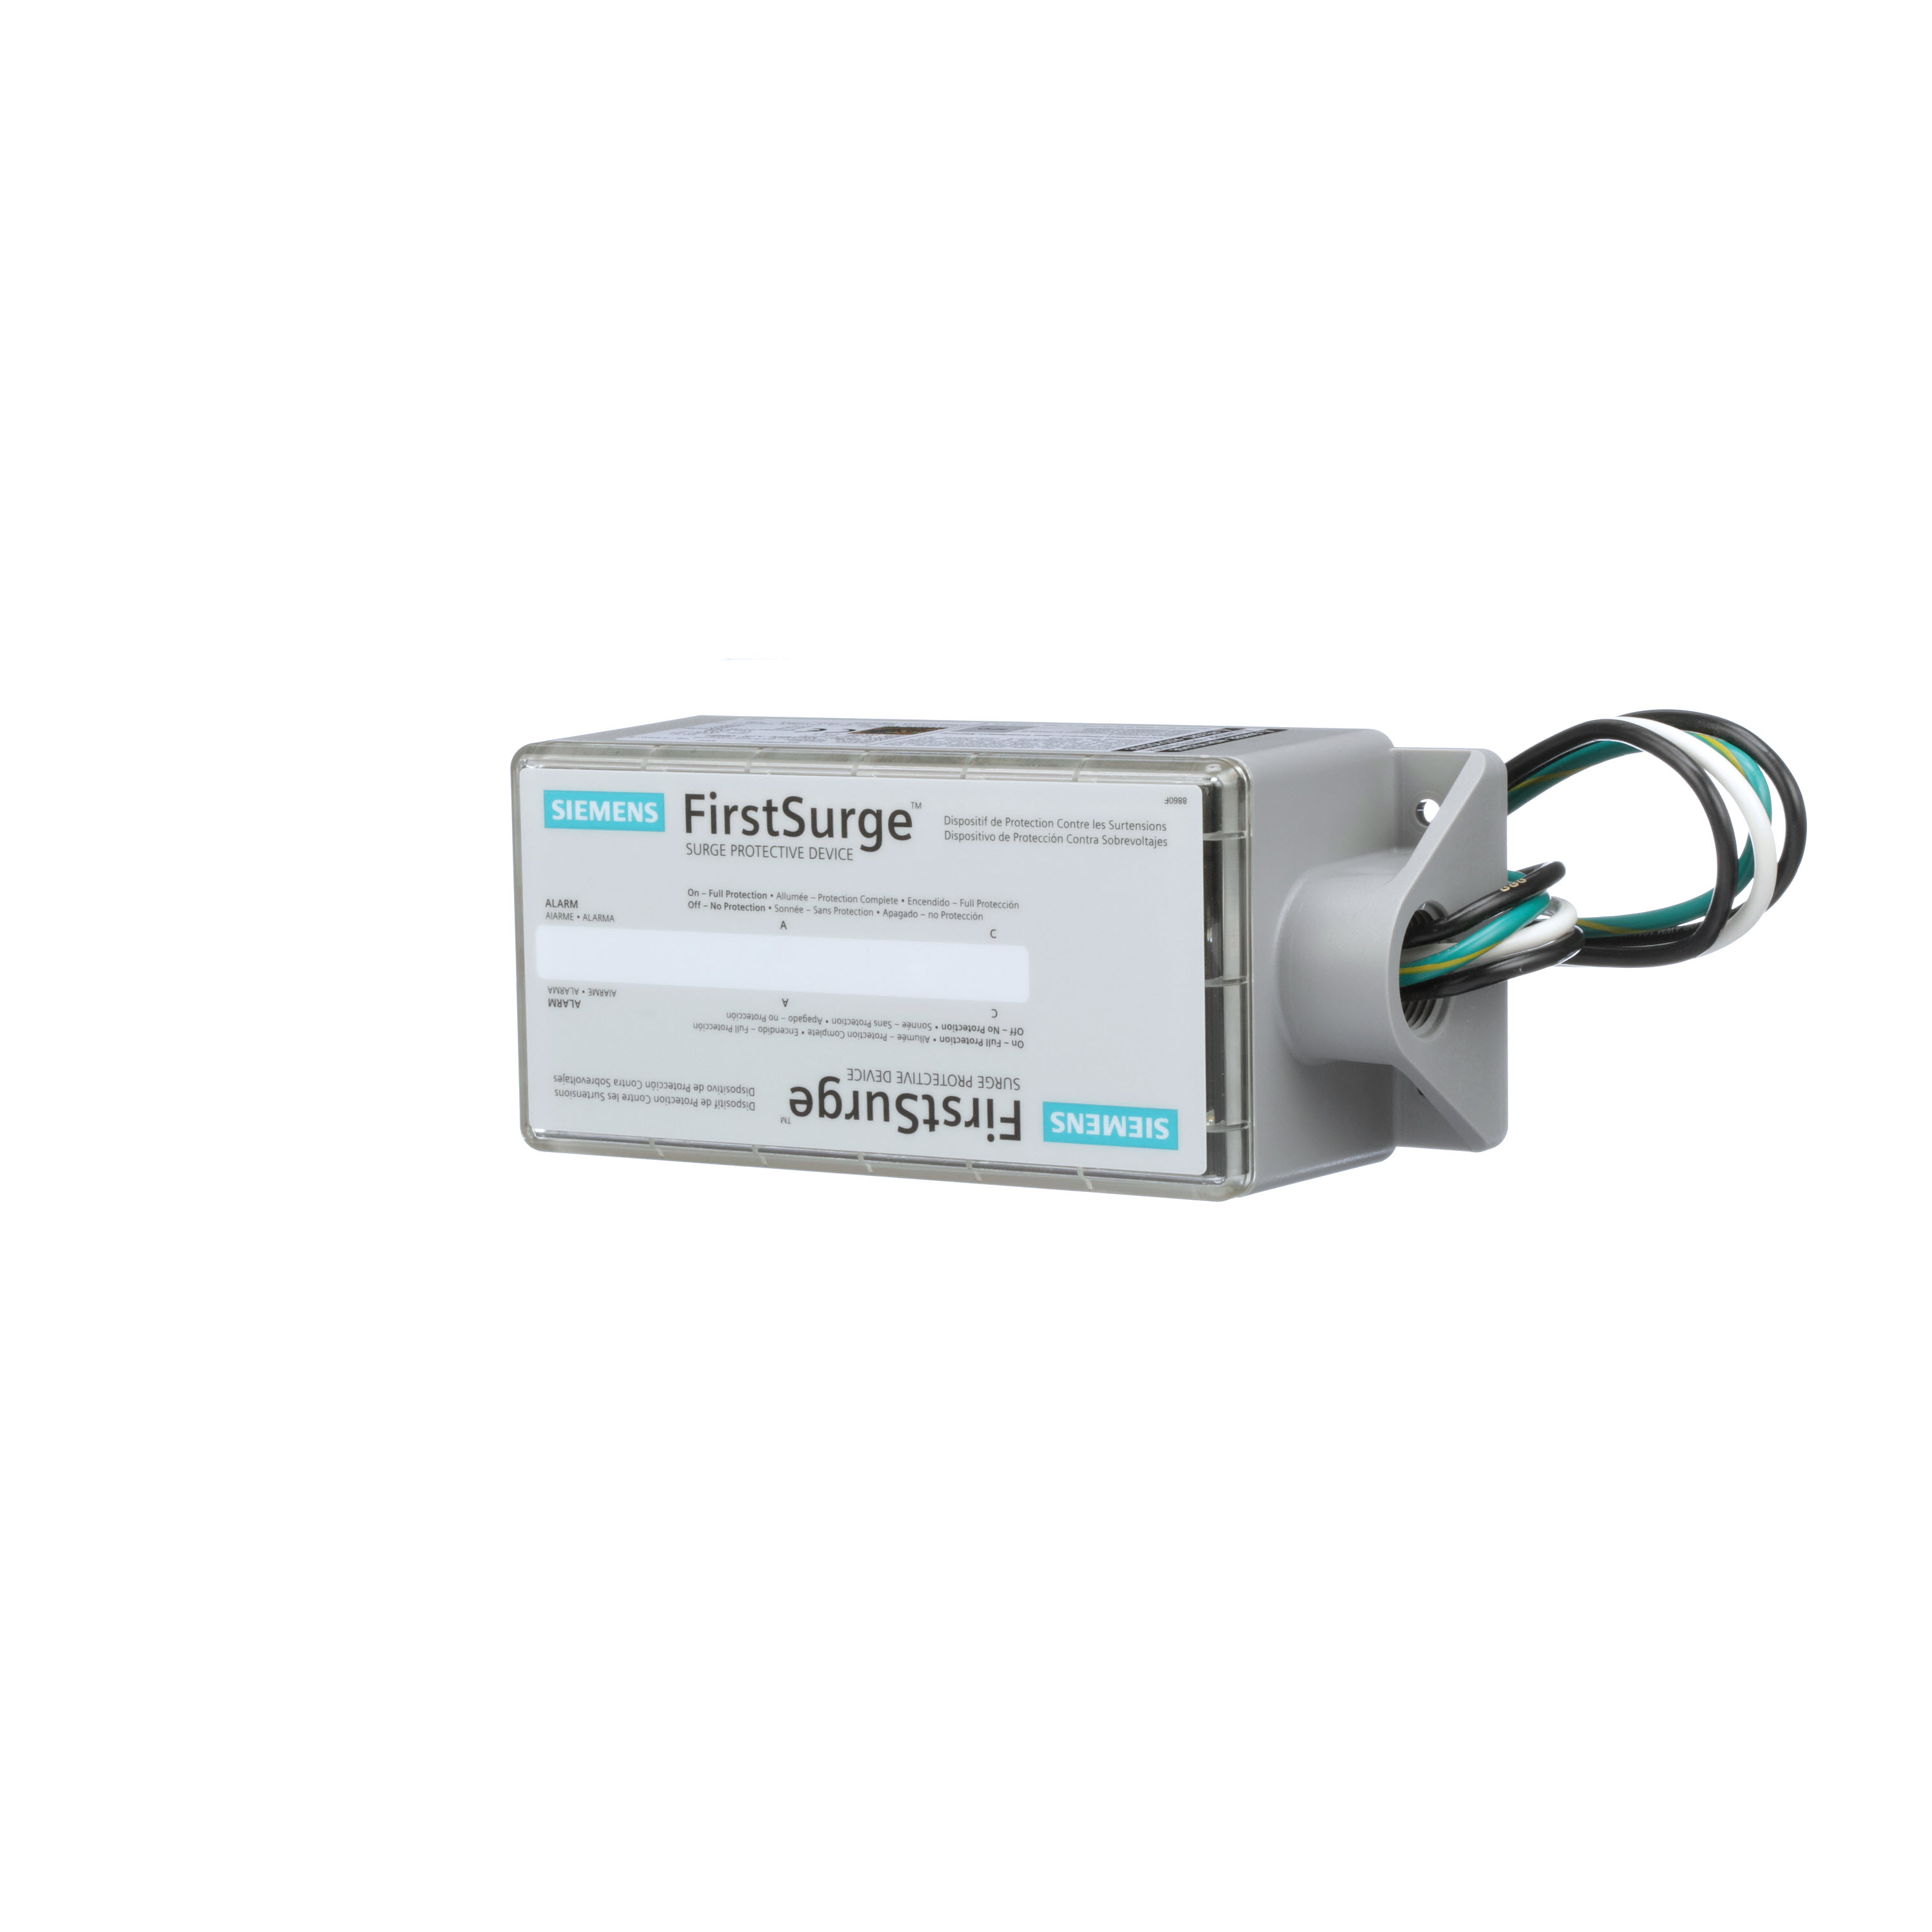 Siemens FirstSurge™ Pro FS140 1-Phase Type 2 Surge Protection Device, 120/243 VAC, 400 A, 140 kA SCCR, 2 Poles